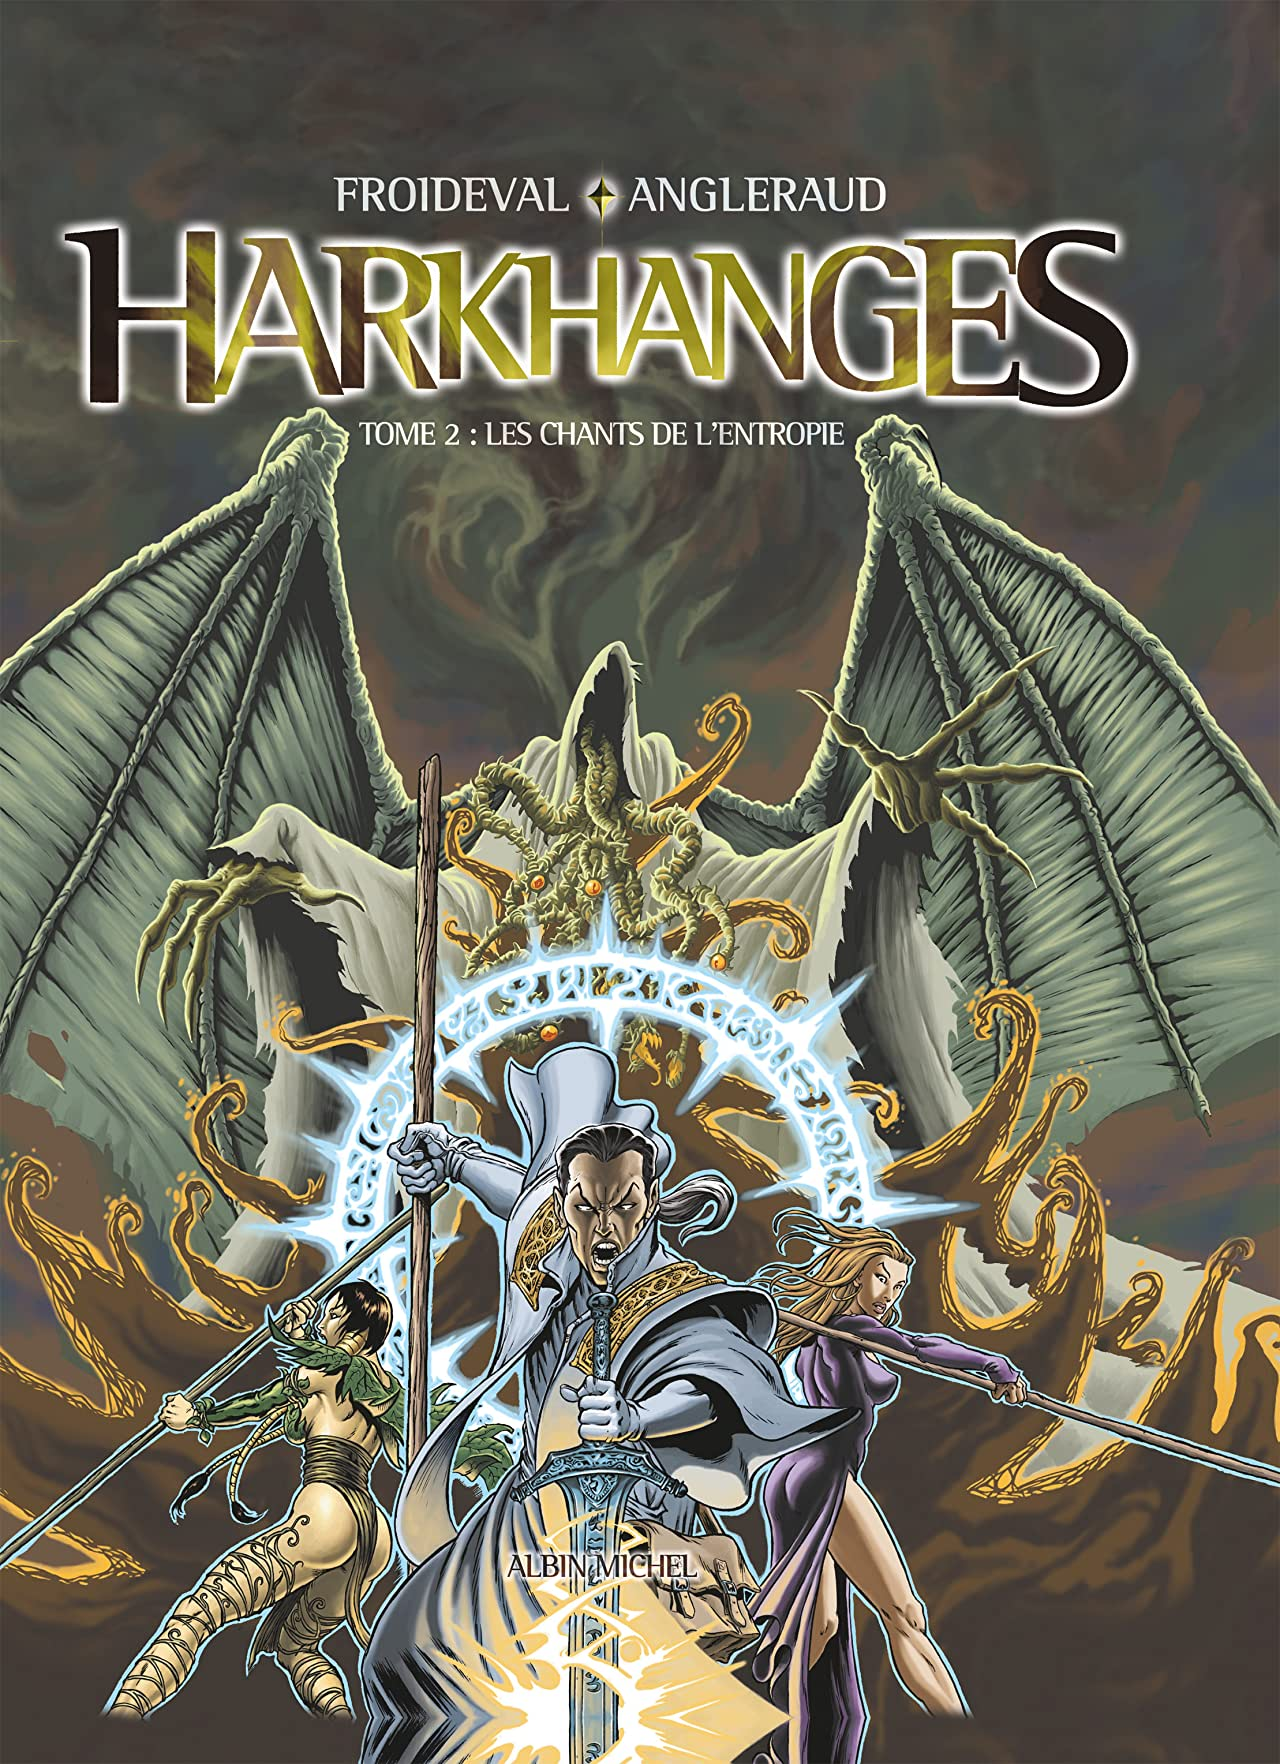 Harkhanges Vol. 2: Les chants de l'Entropie